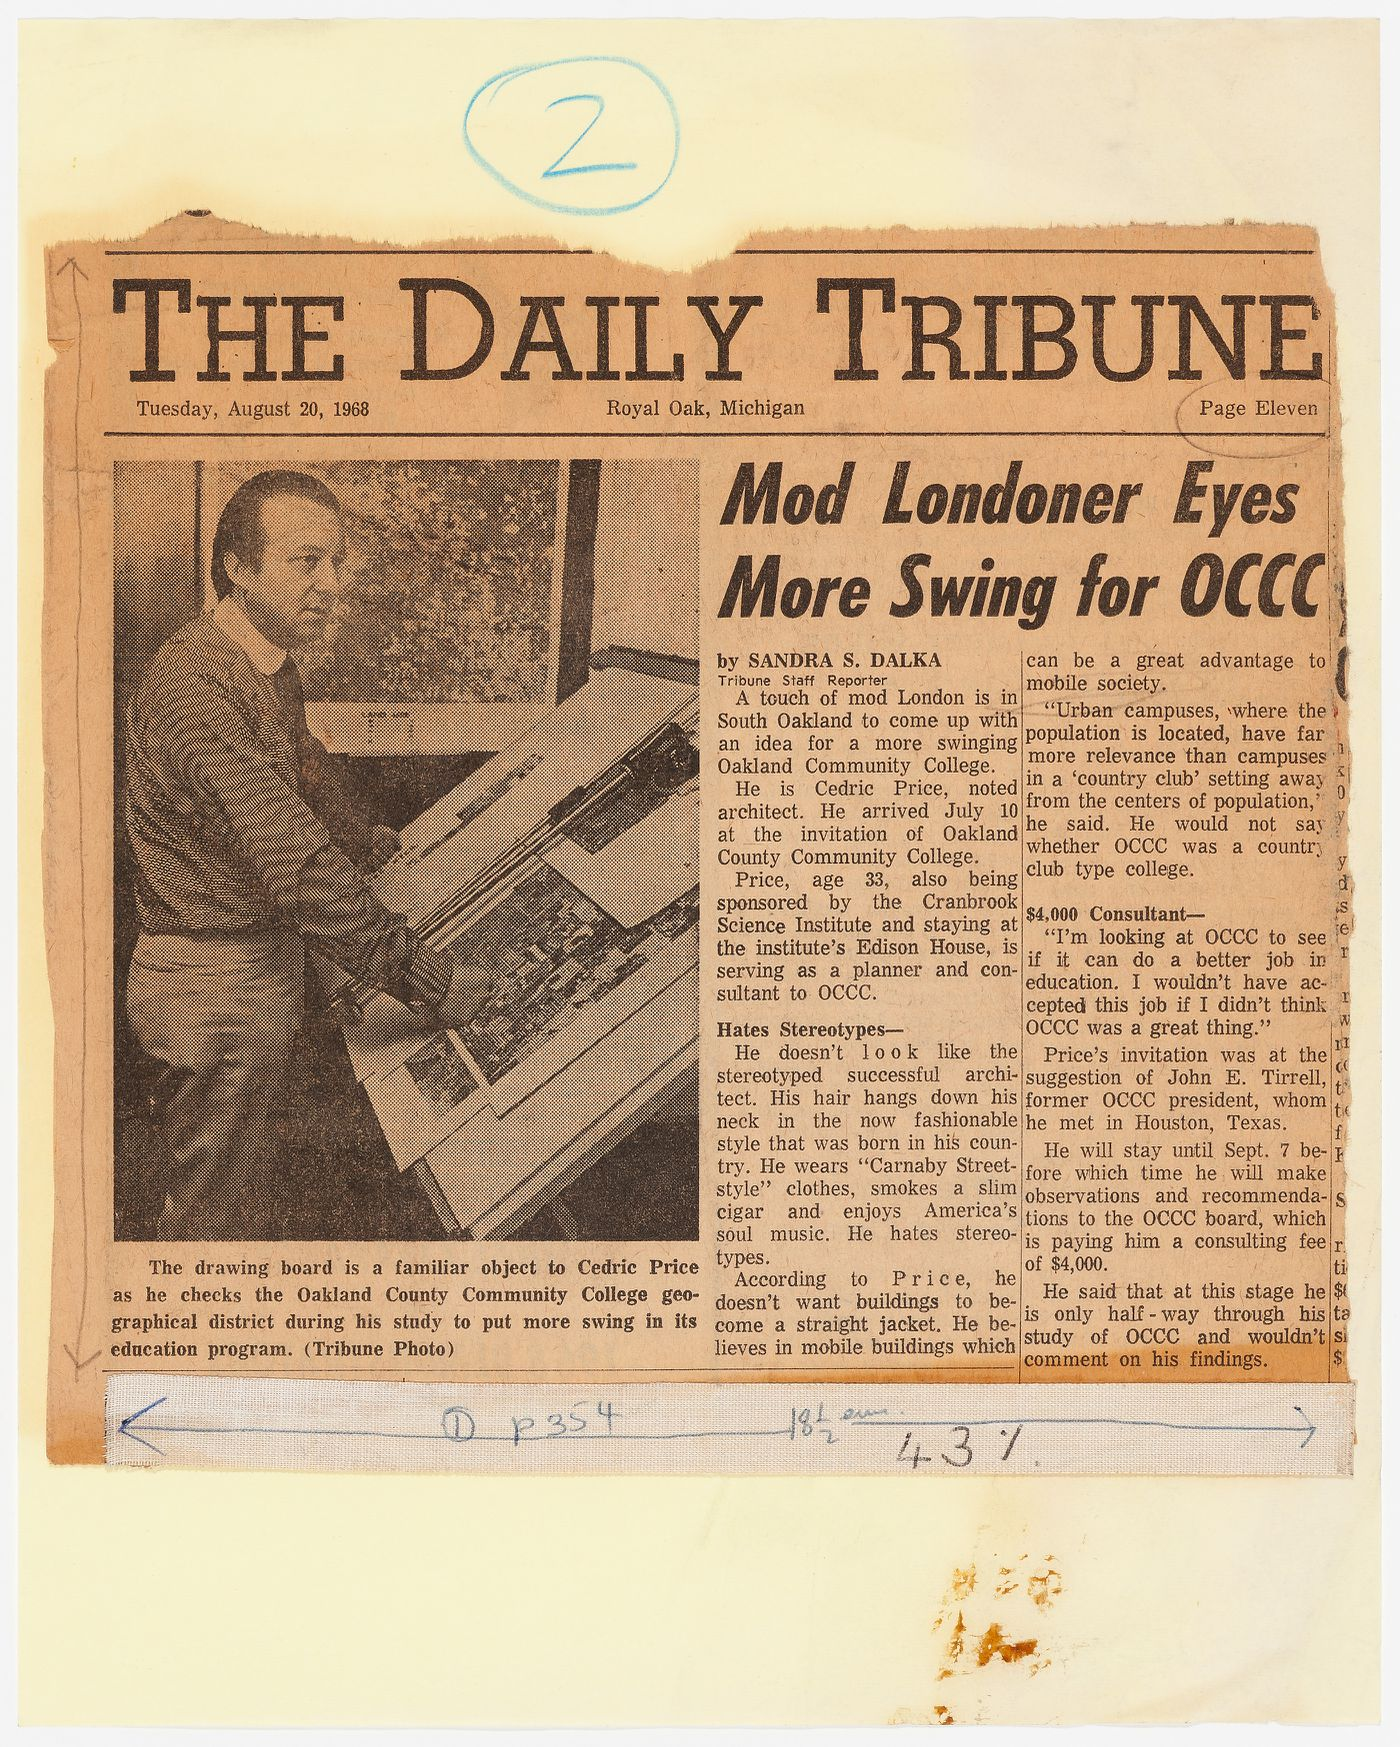 Clipping of an article about Cedric Price from the August 20, 1968 issue of The Daily Tribune (Royal Oak, Michigan)